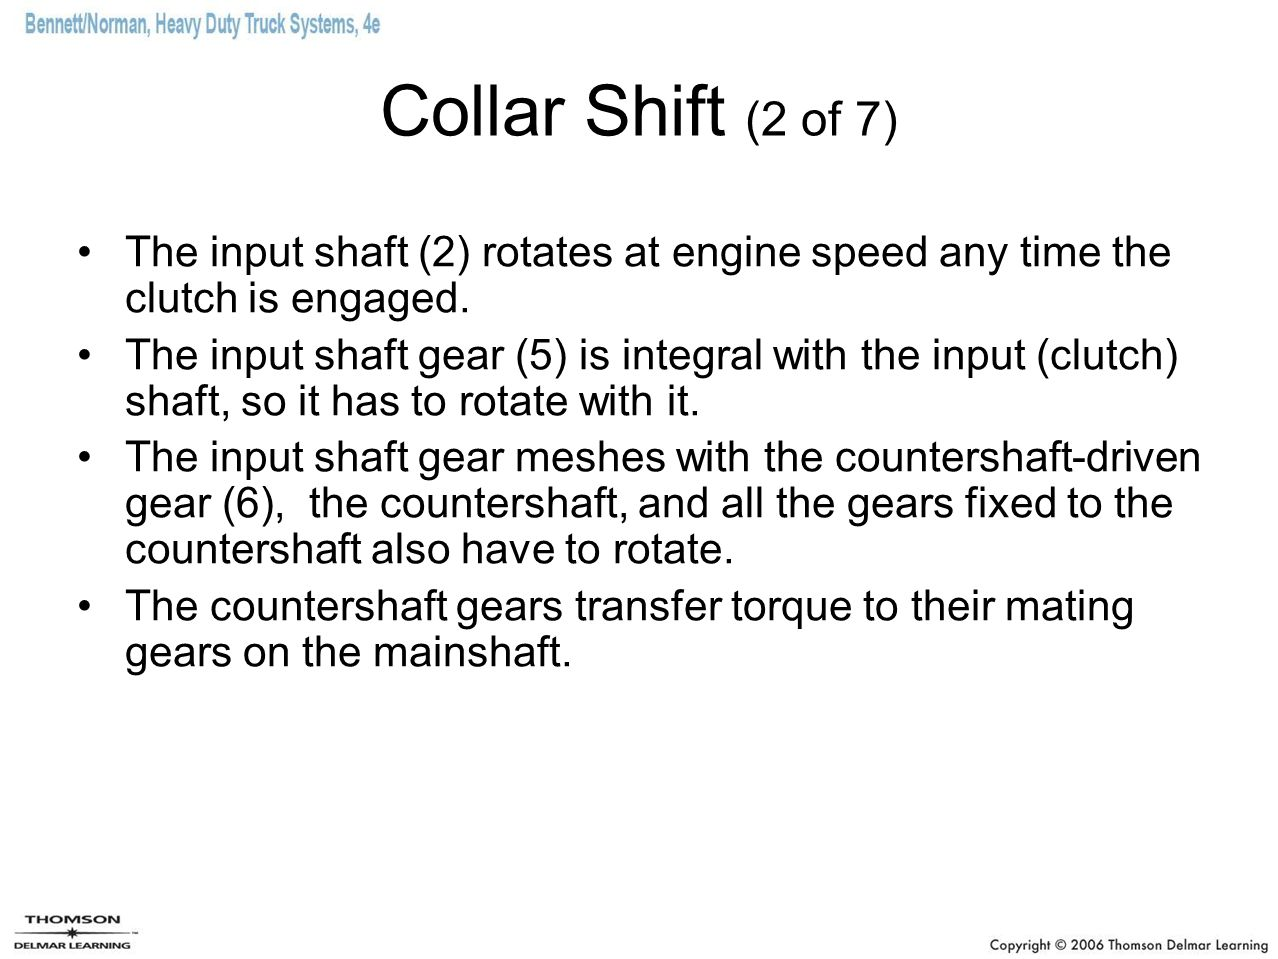 Collar Shift (2 of 7) The input shaft (2) rotates at engine speed any time the clutch is engaged. The input shaft gear (5) is integral with the input